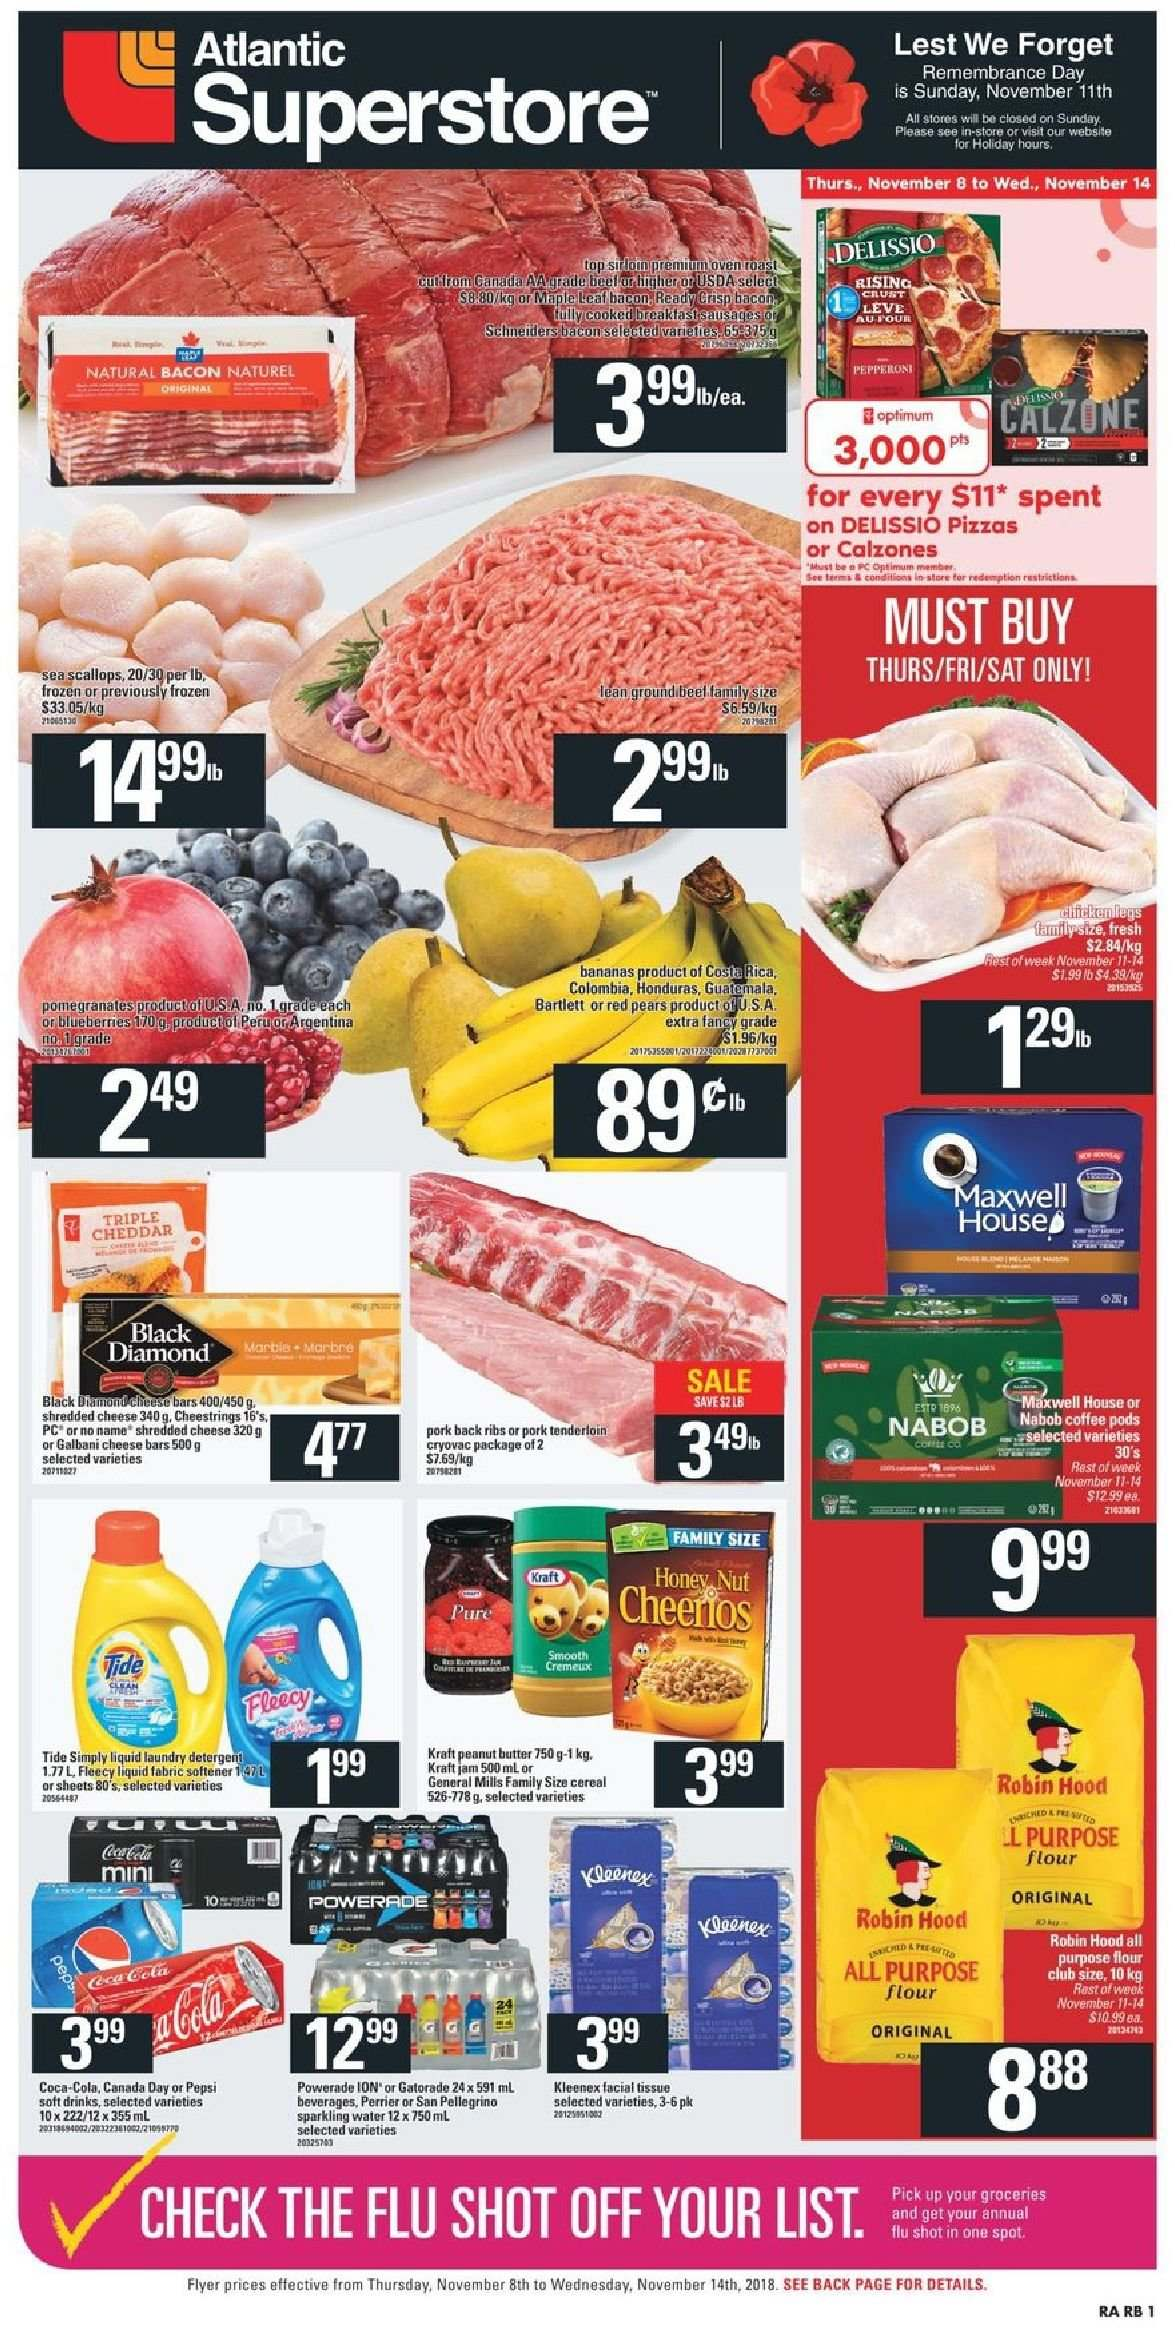 Atlantic Superstore Flyer - November 08, 2018 - November 14, 2018 - Sales products - all purpose flour, bacon, bananas, butter, cereals, coffee, coffee pods, flour, frozen, kleenex, scallops, shredded cheese, tide, hoodie, jam, pork meat, pork tenderloin, powerade, cheddar, peanut butter, peanuts, pears, pepperoni, pepsi, tenderloin, cheese, sparkling water, softener, cereal, ribs, san pellegrino, perrier. Page 1.